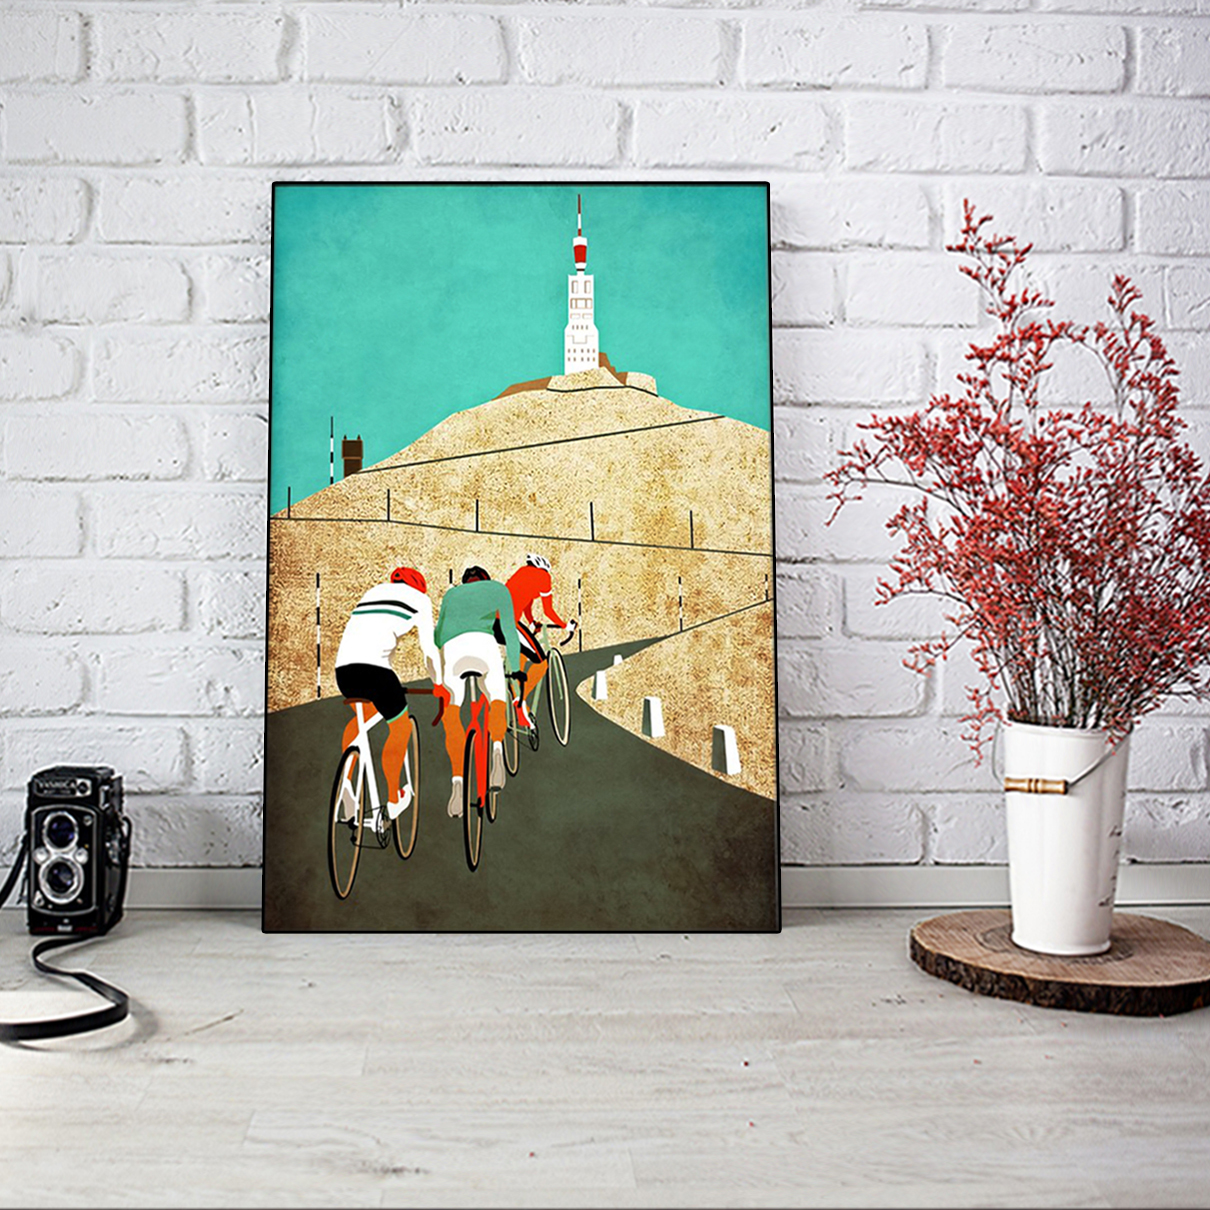 Cycling mount ventoux poster A2